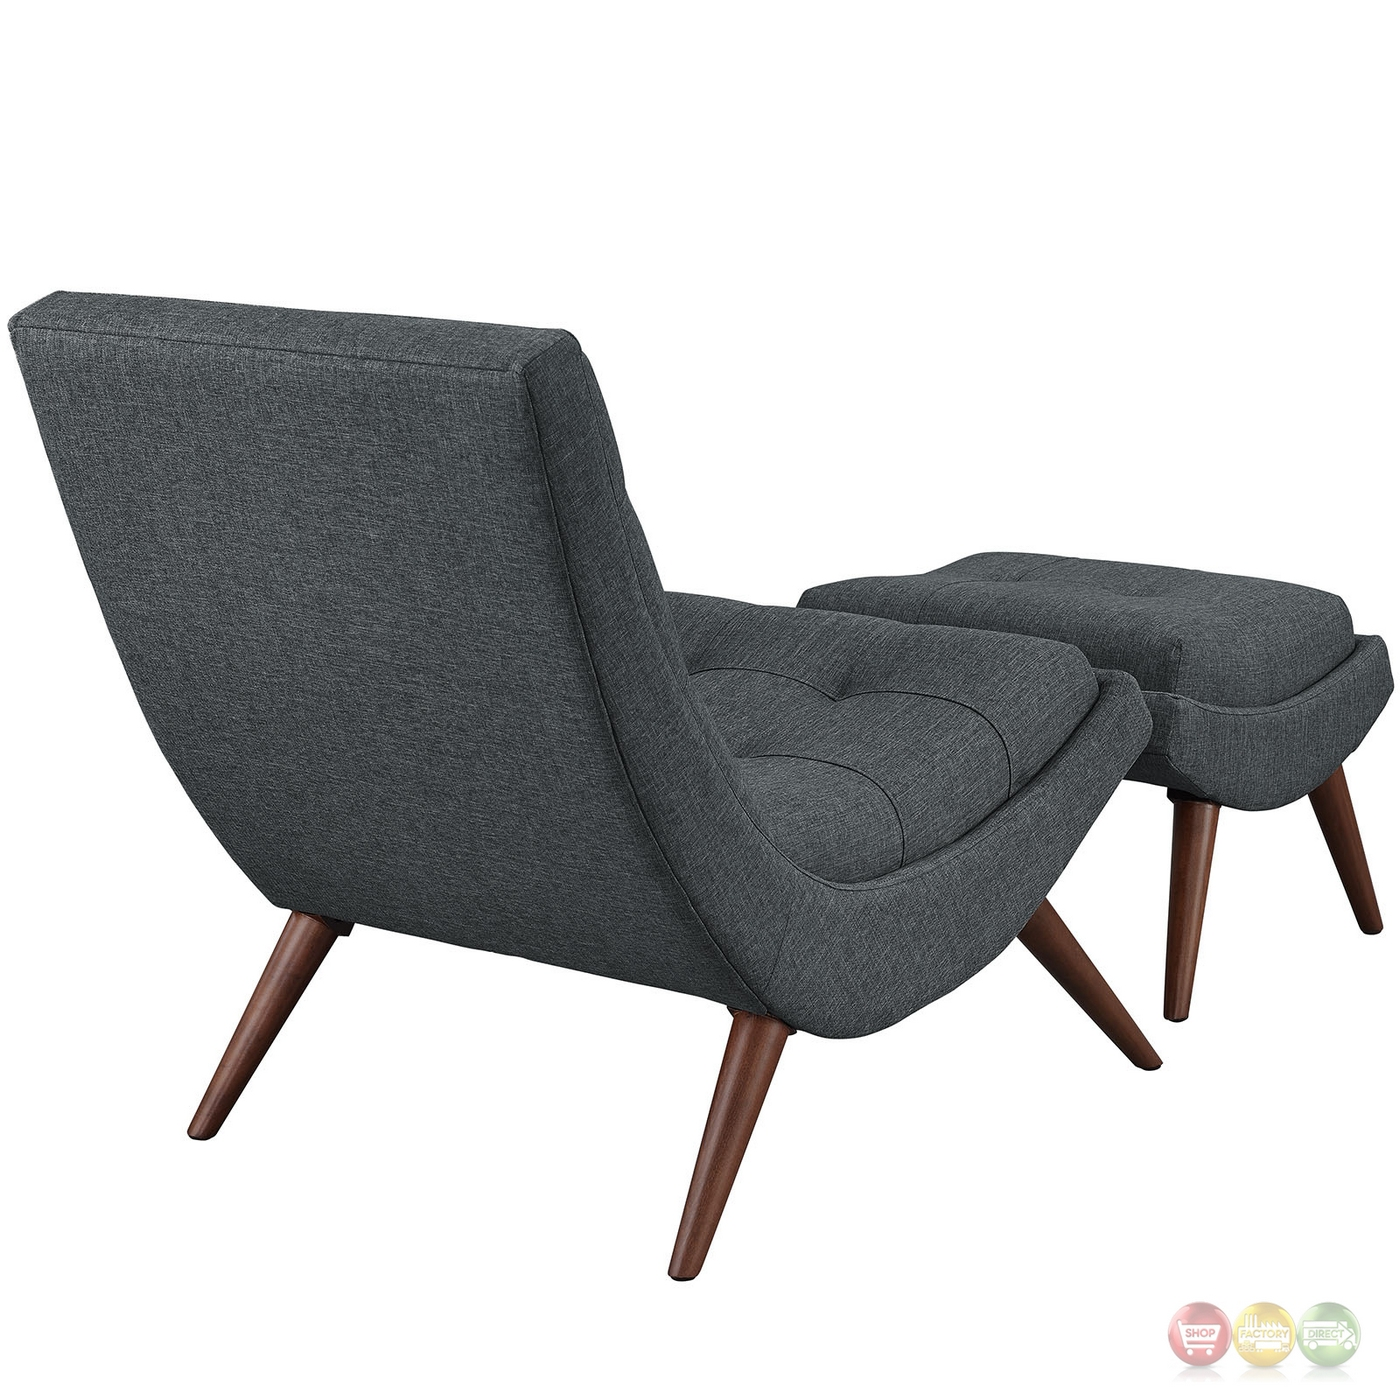 Lounge Chair With Ottoman Ramp Modern Upholstered Lounge Chair And Ottoman With Wood